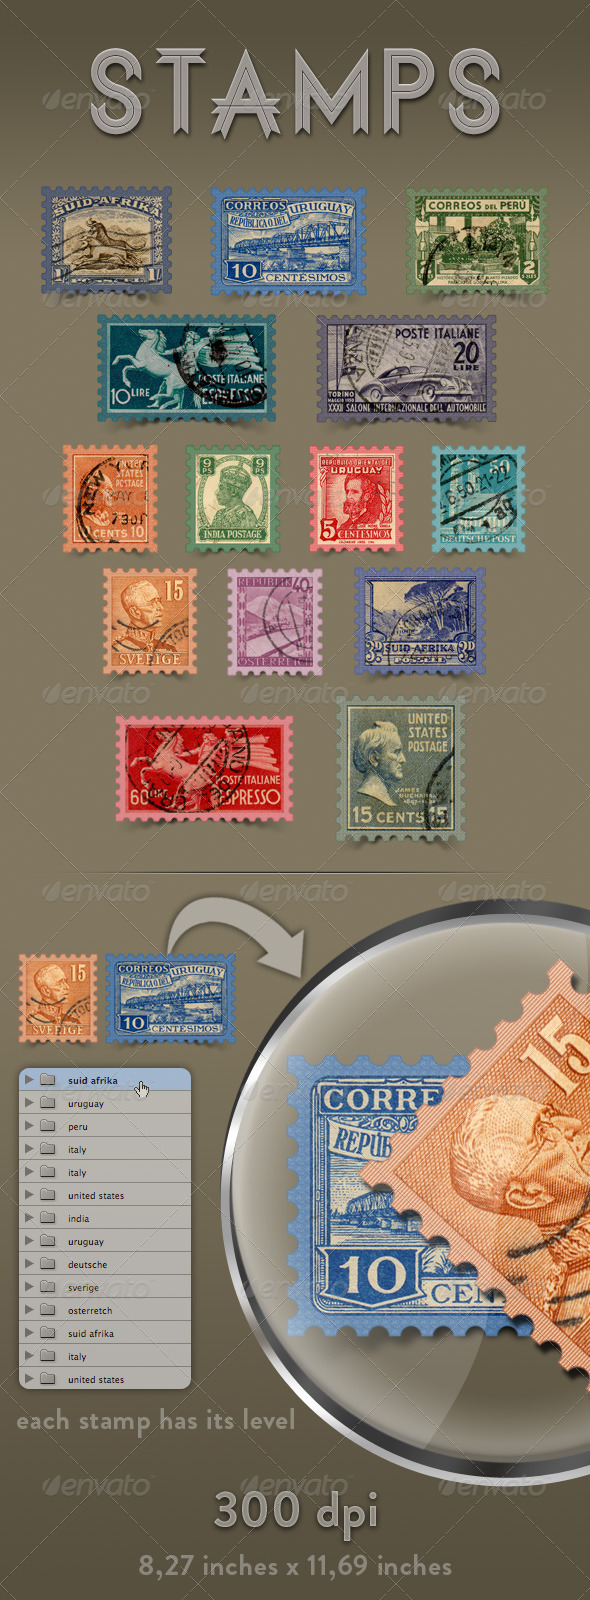 Stamps - Miscellaneous Isolated Objects